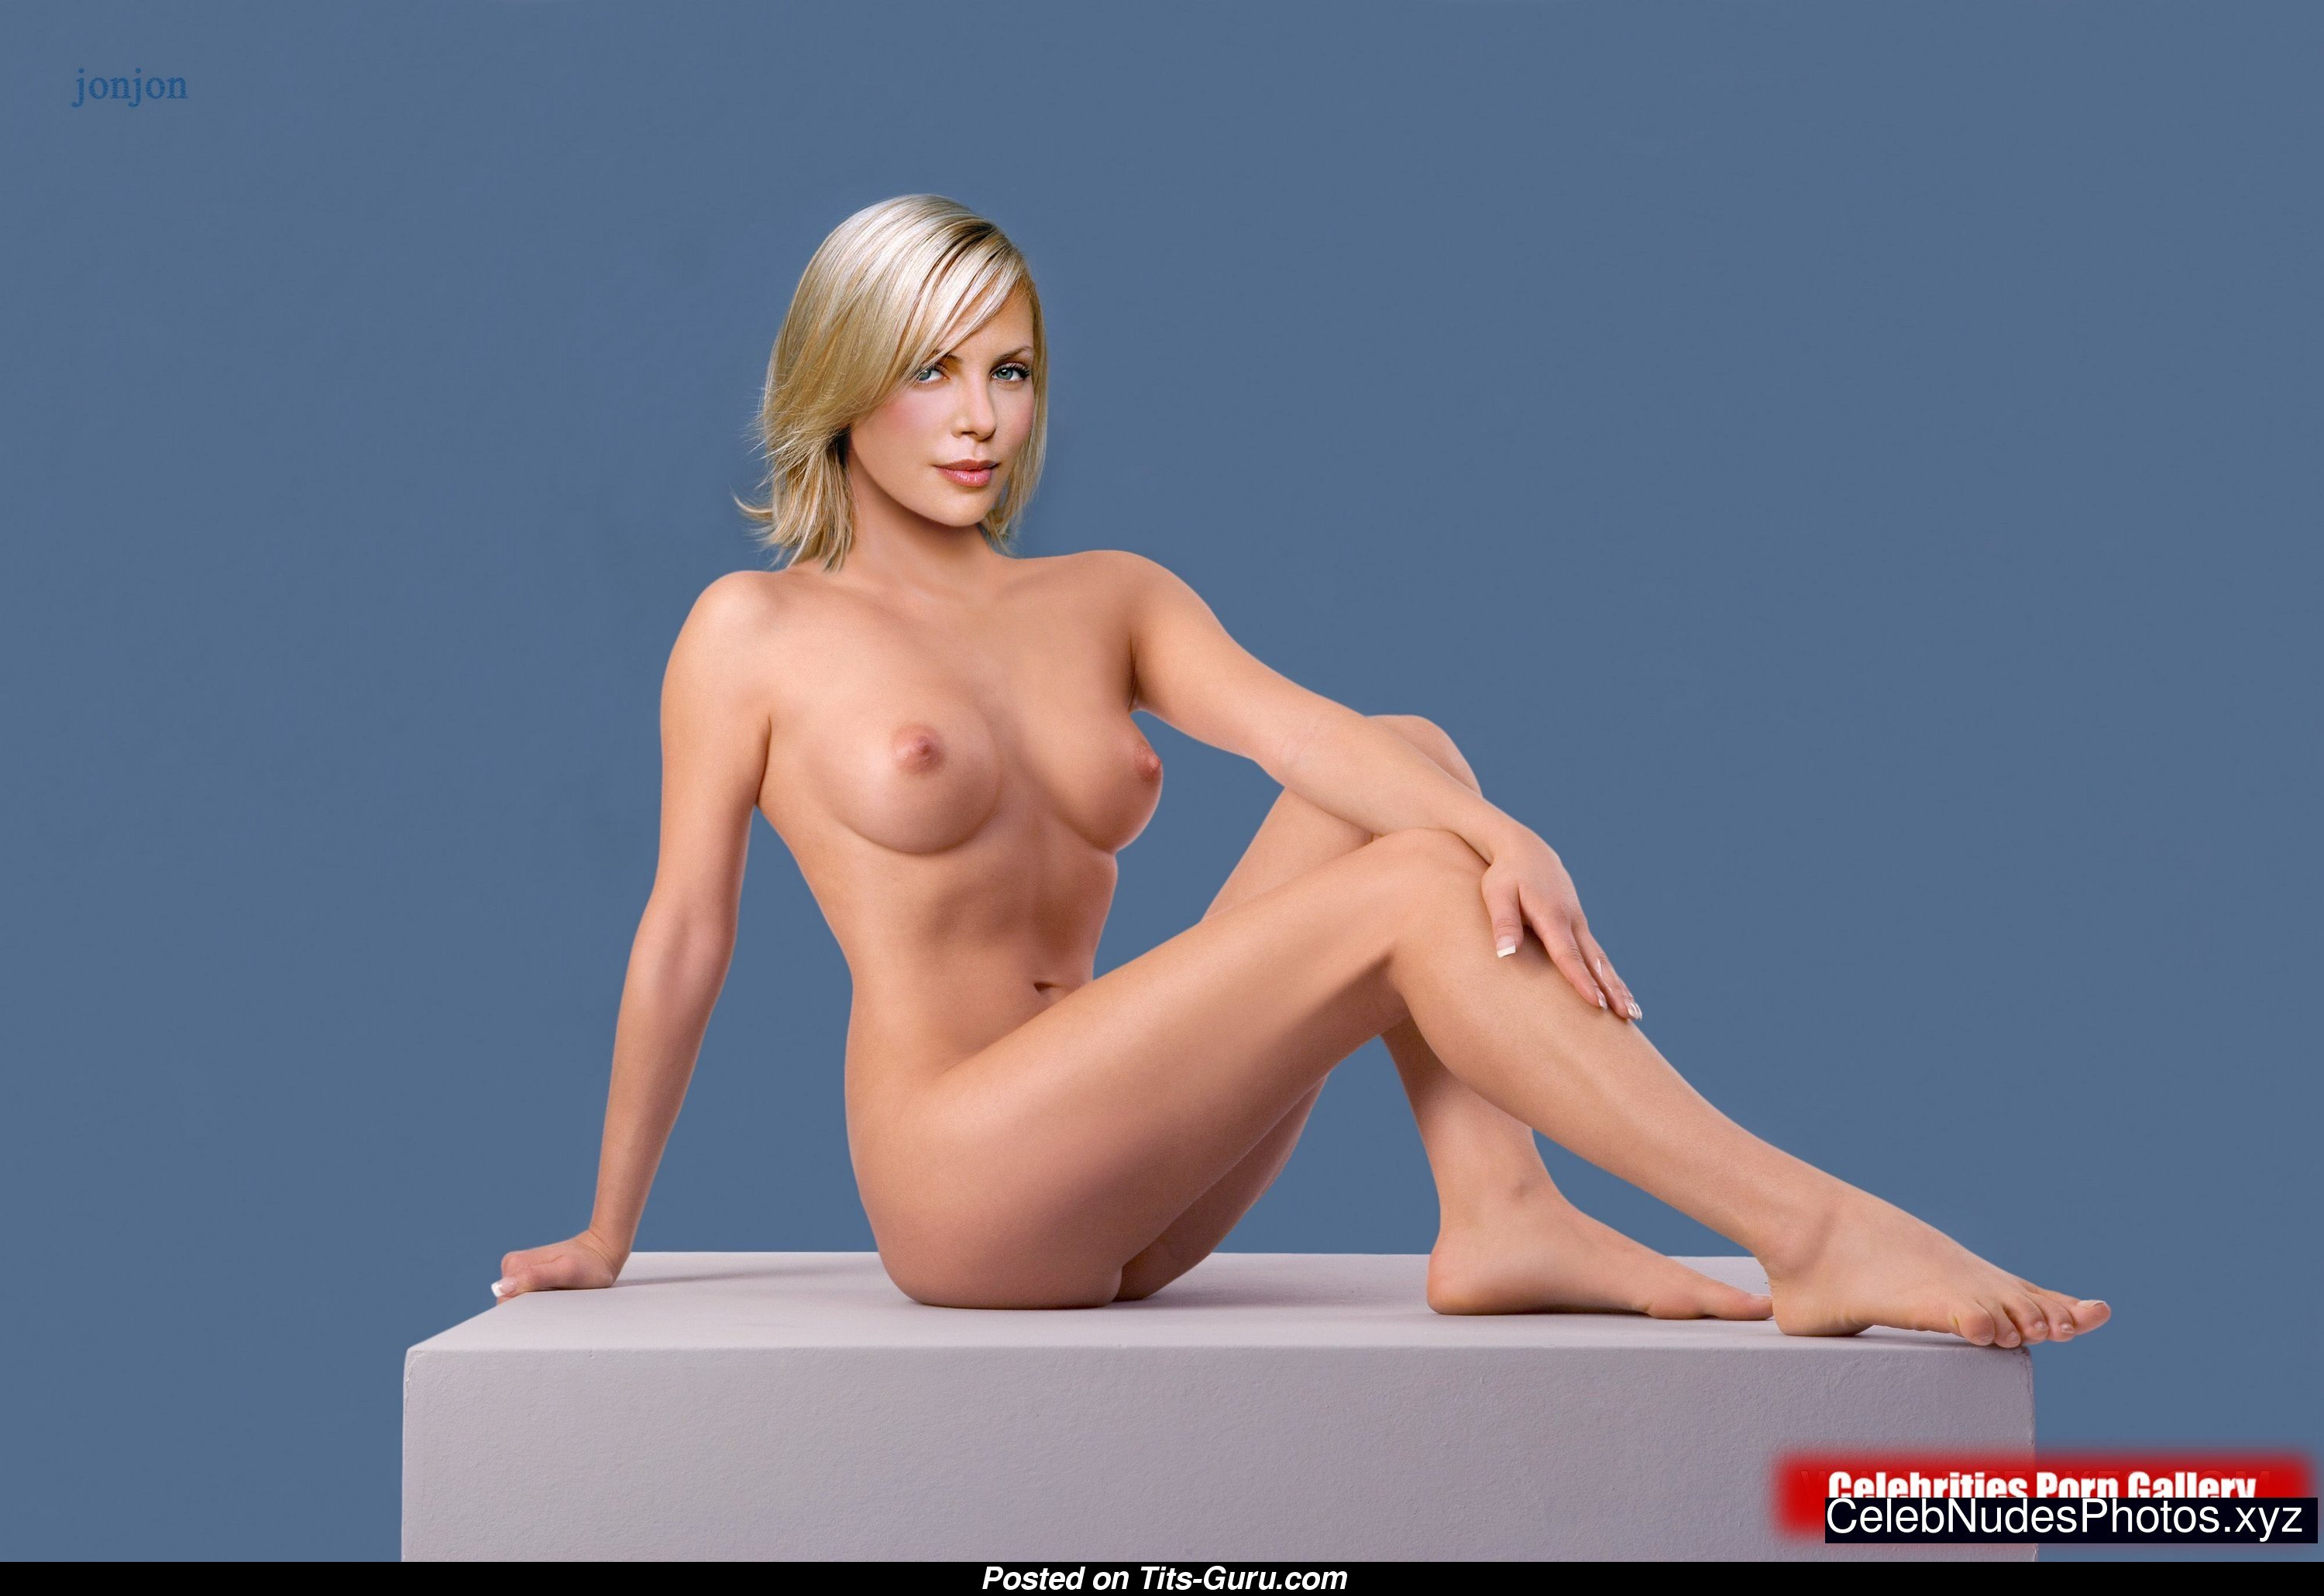 With you Charlize theron naked free pictures share your